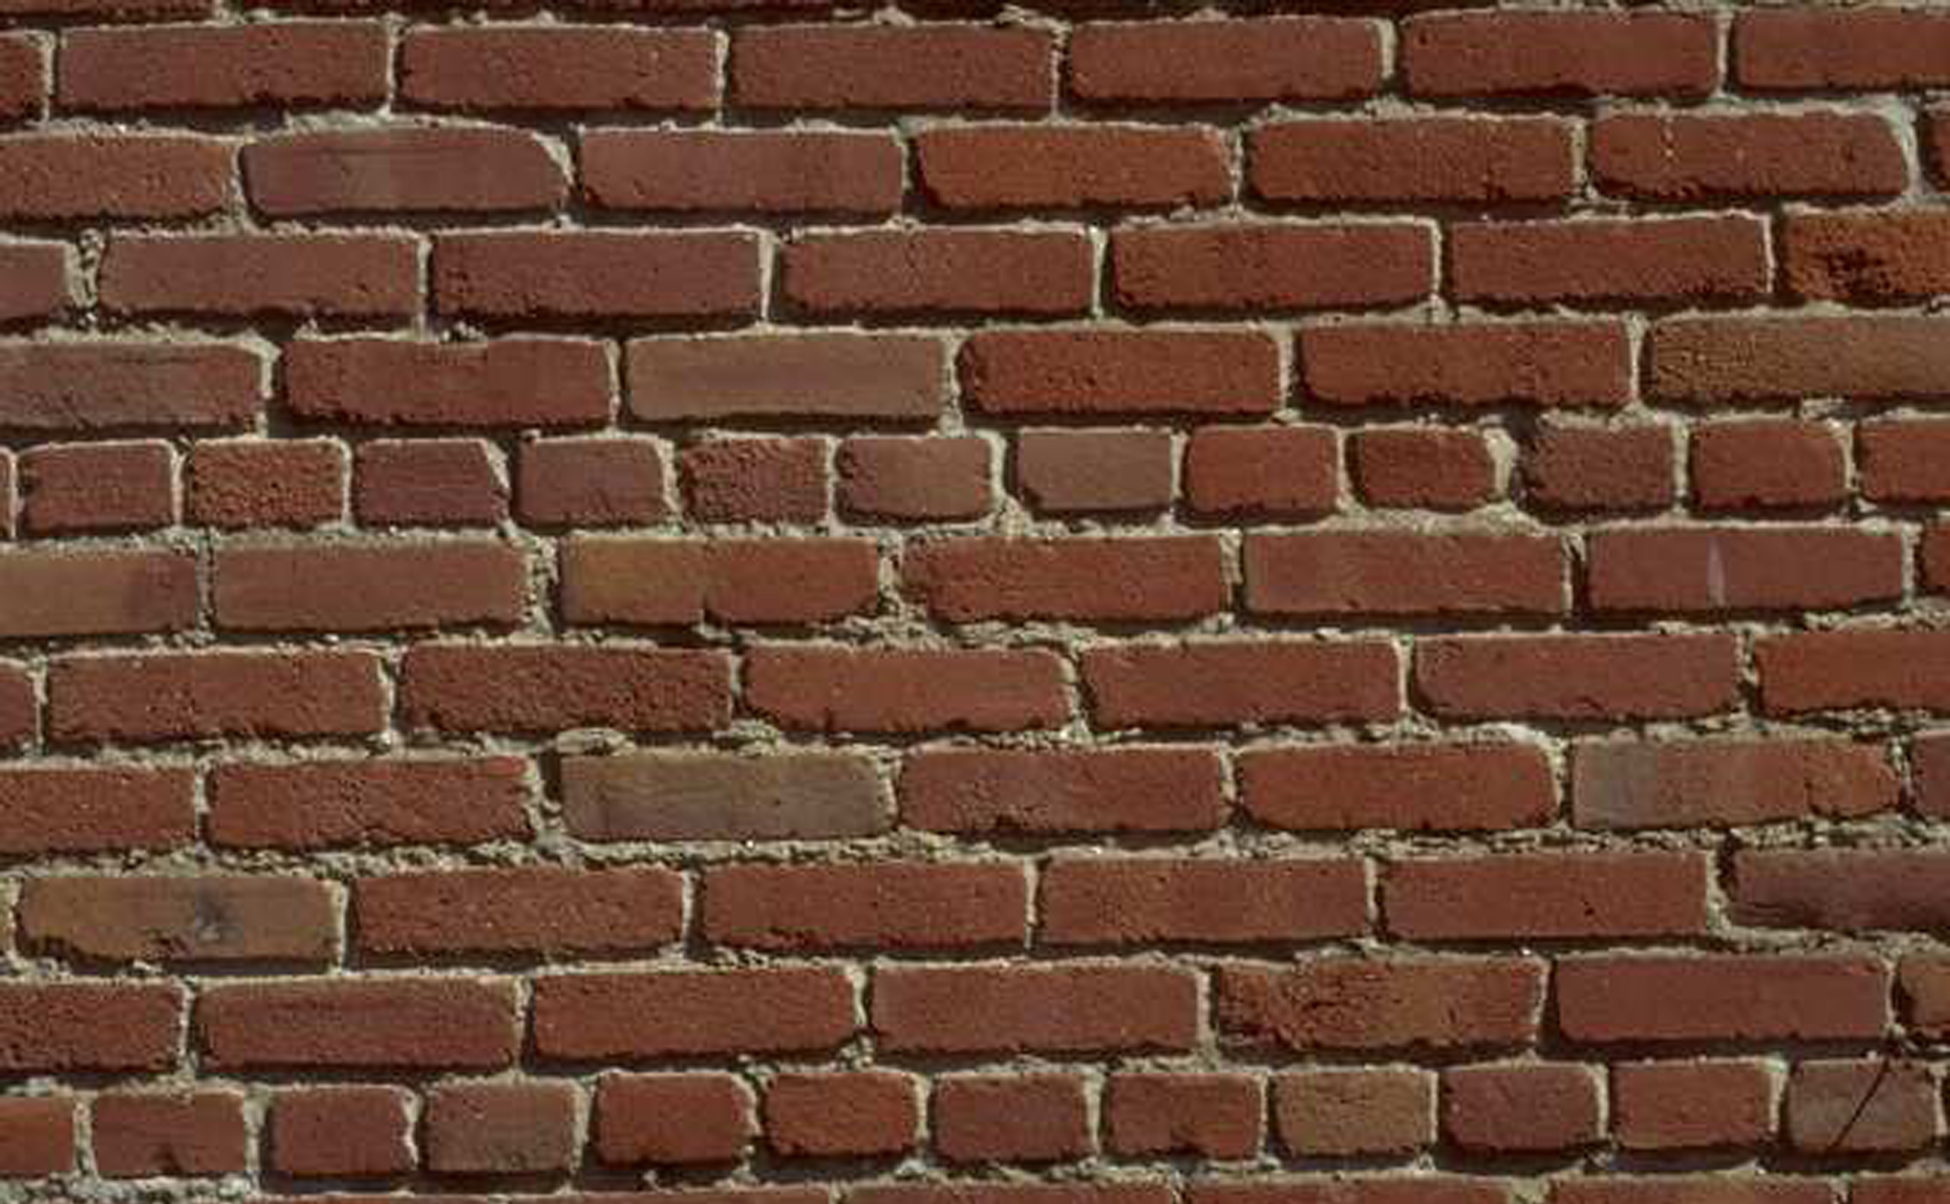 Photoshop Wall Bricks Texture Brick Textures 10 102 My